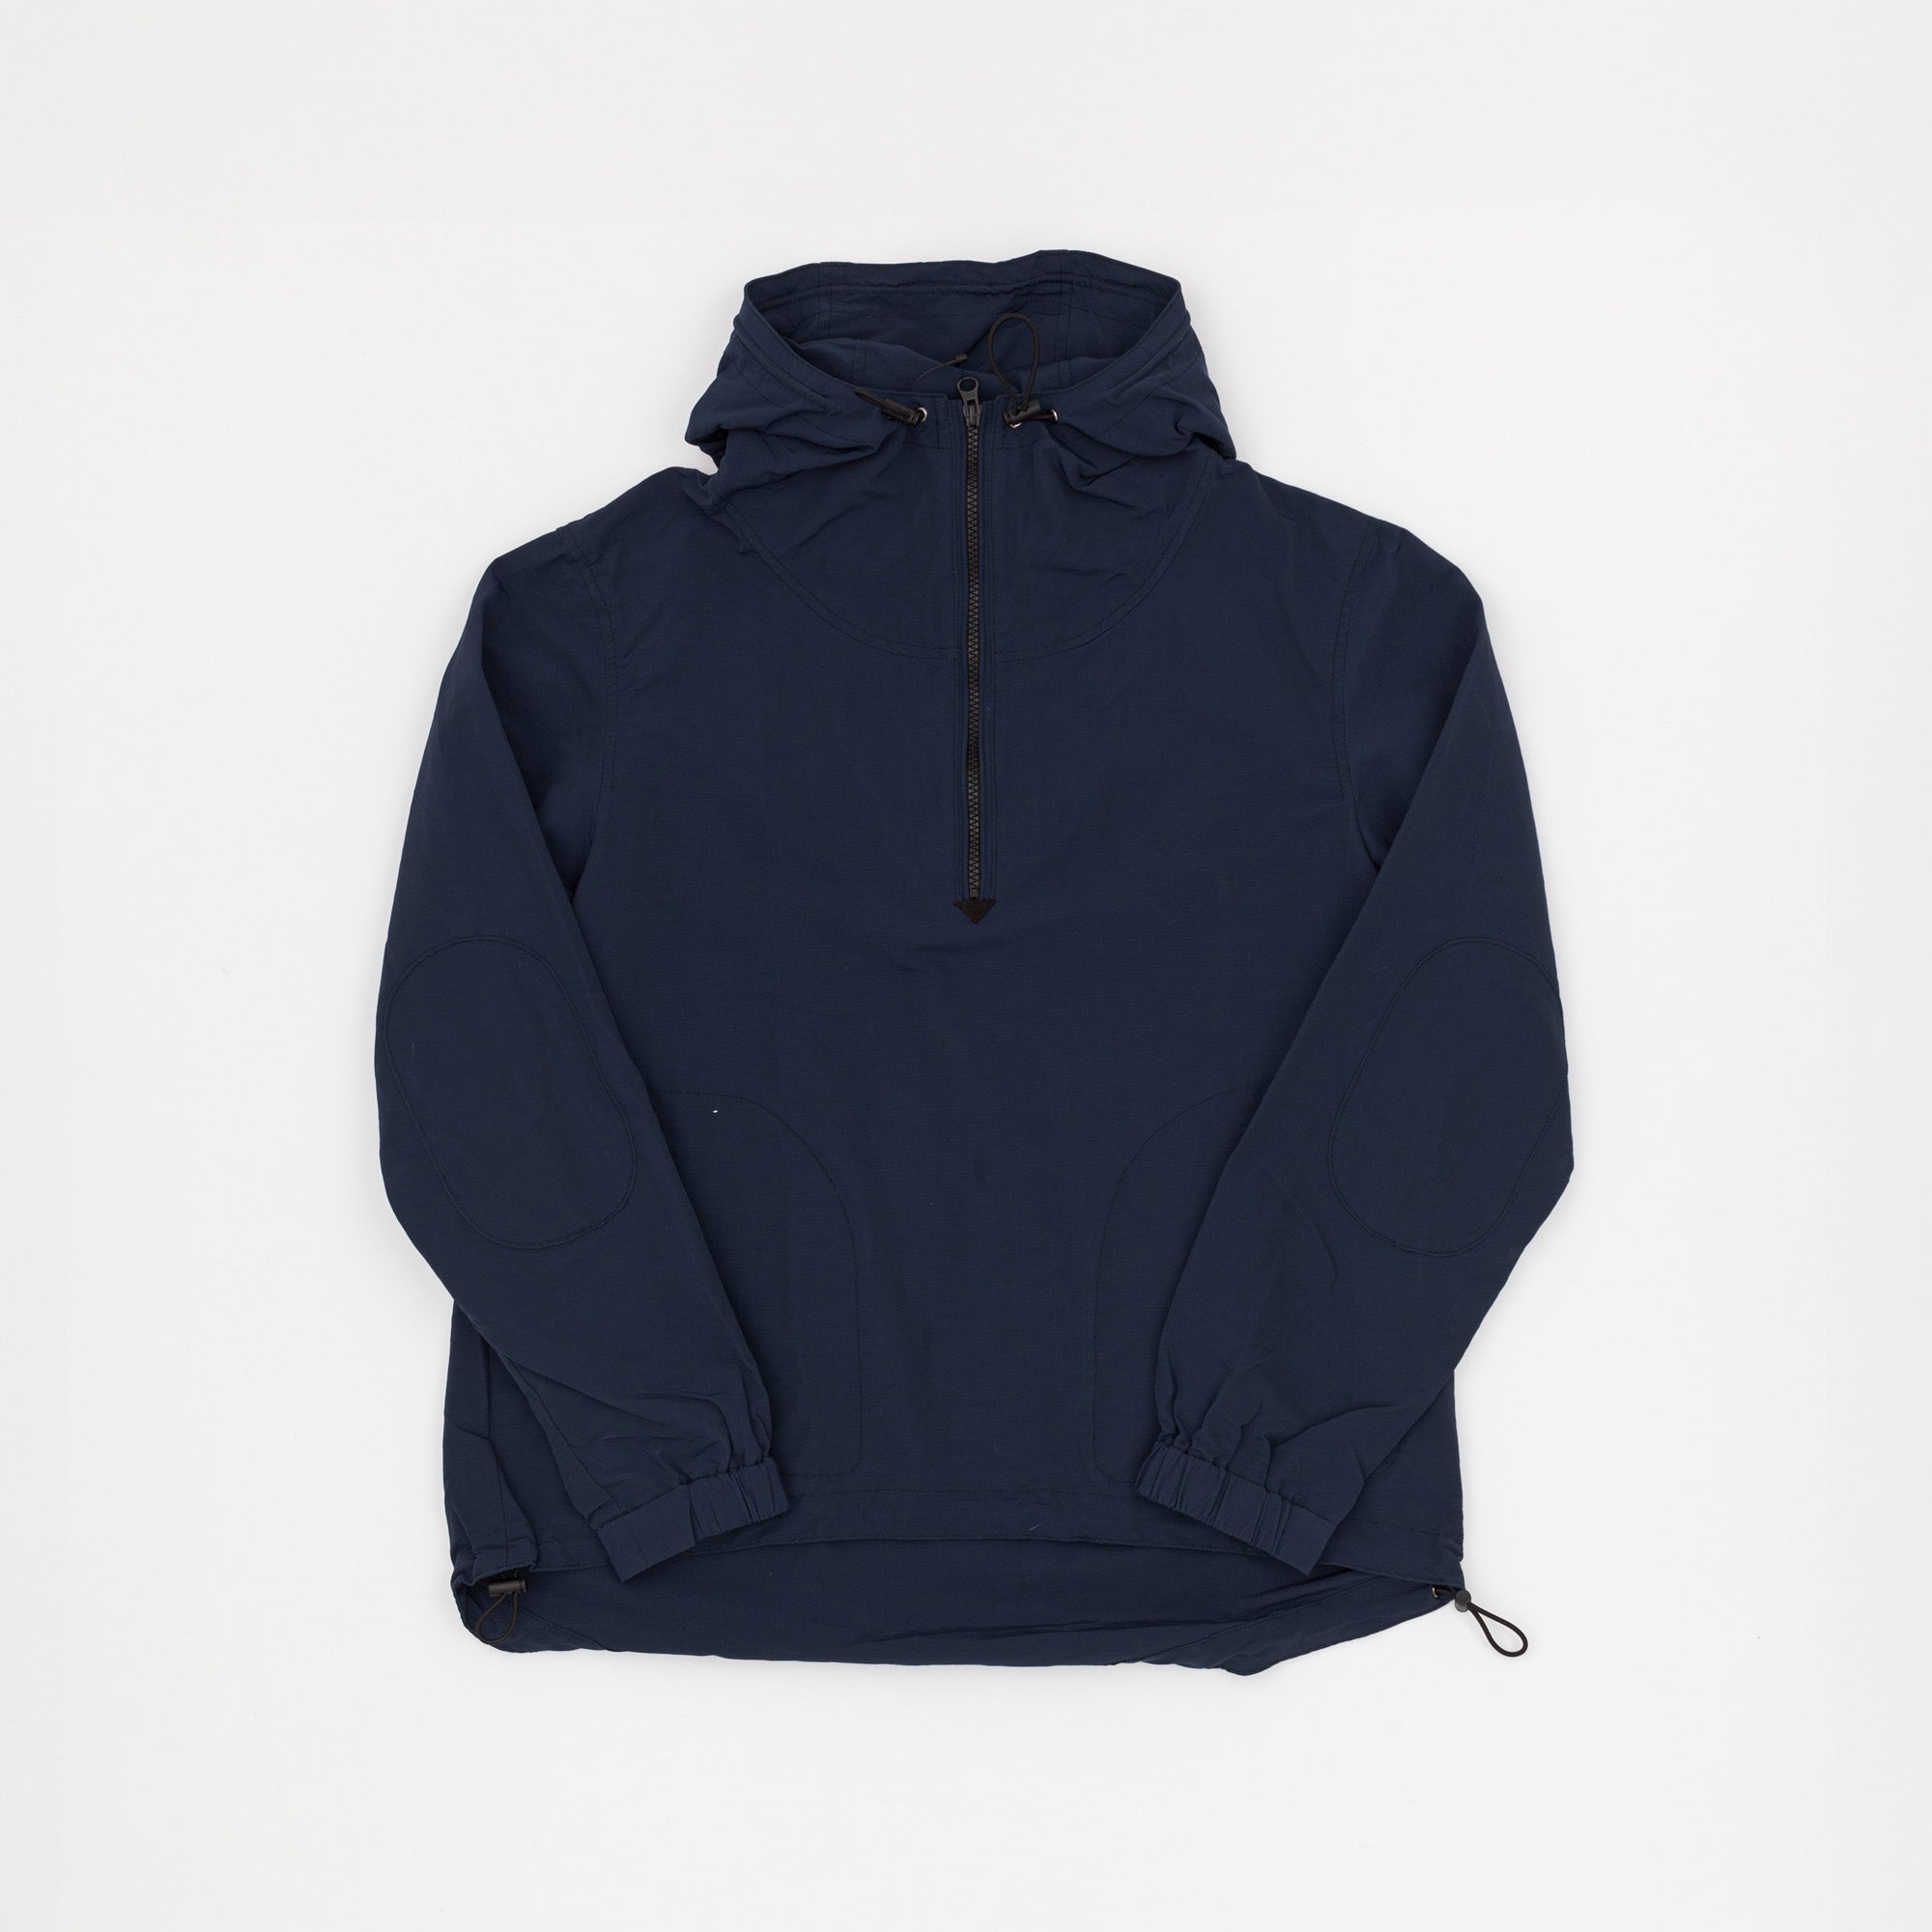 Master& Co Japan 60/40 Nyco Packable Pullover Anorak